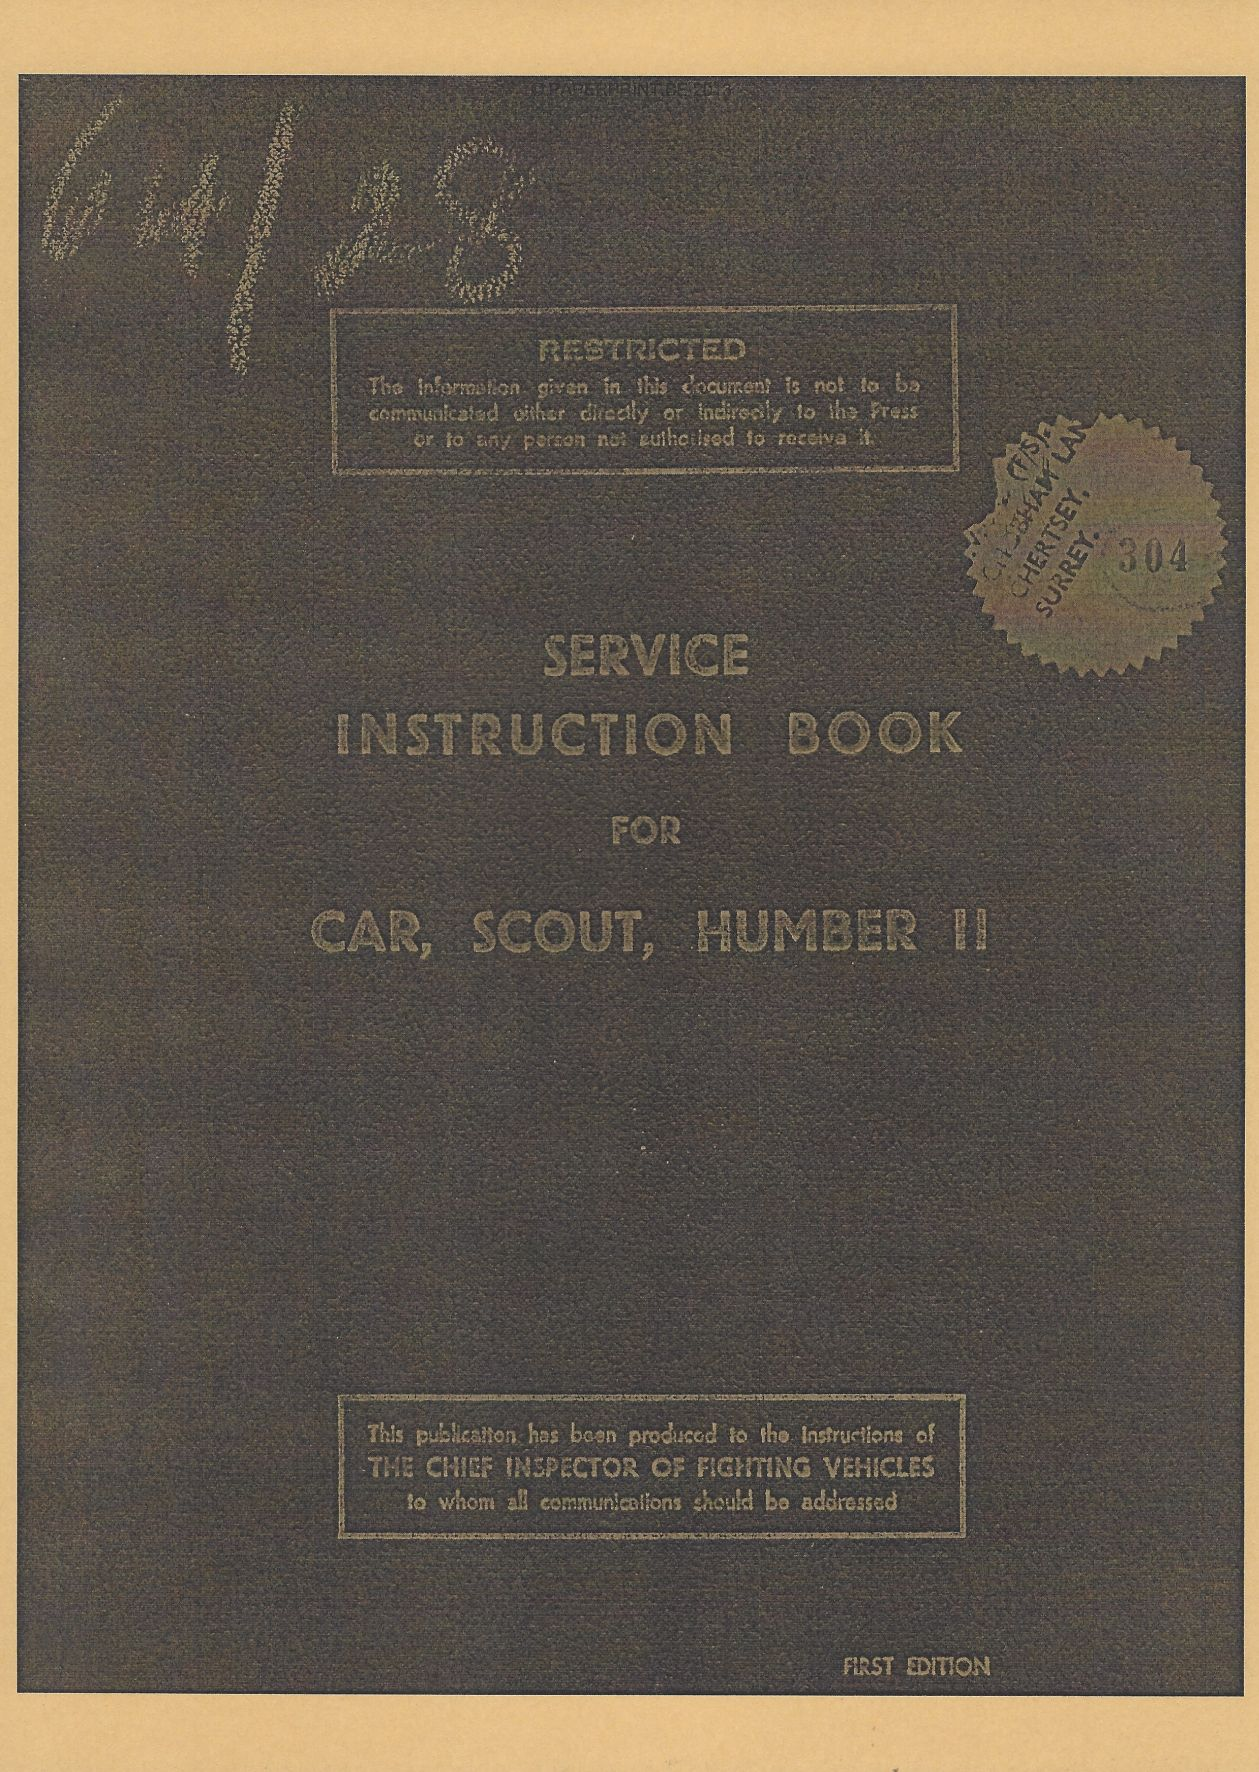 SERVICE INSTRUCTION BOOK FOR HUMBER SCOUT CAR